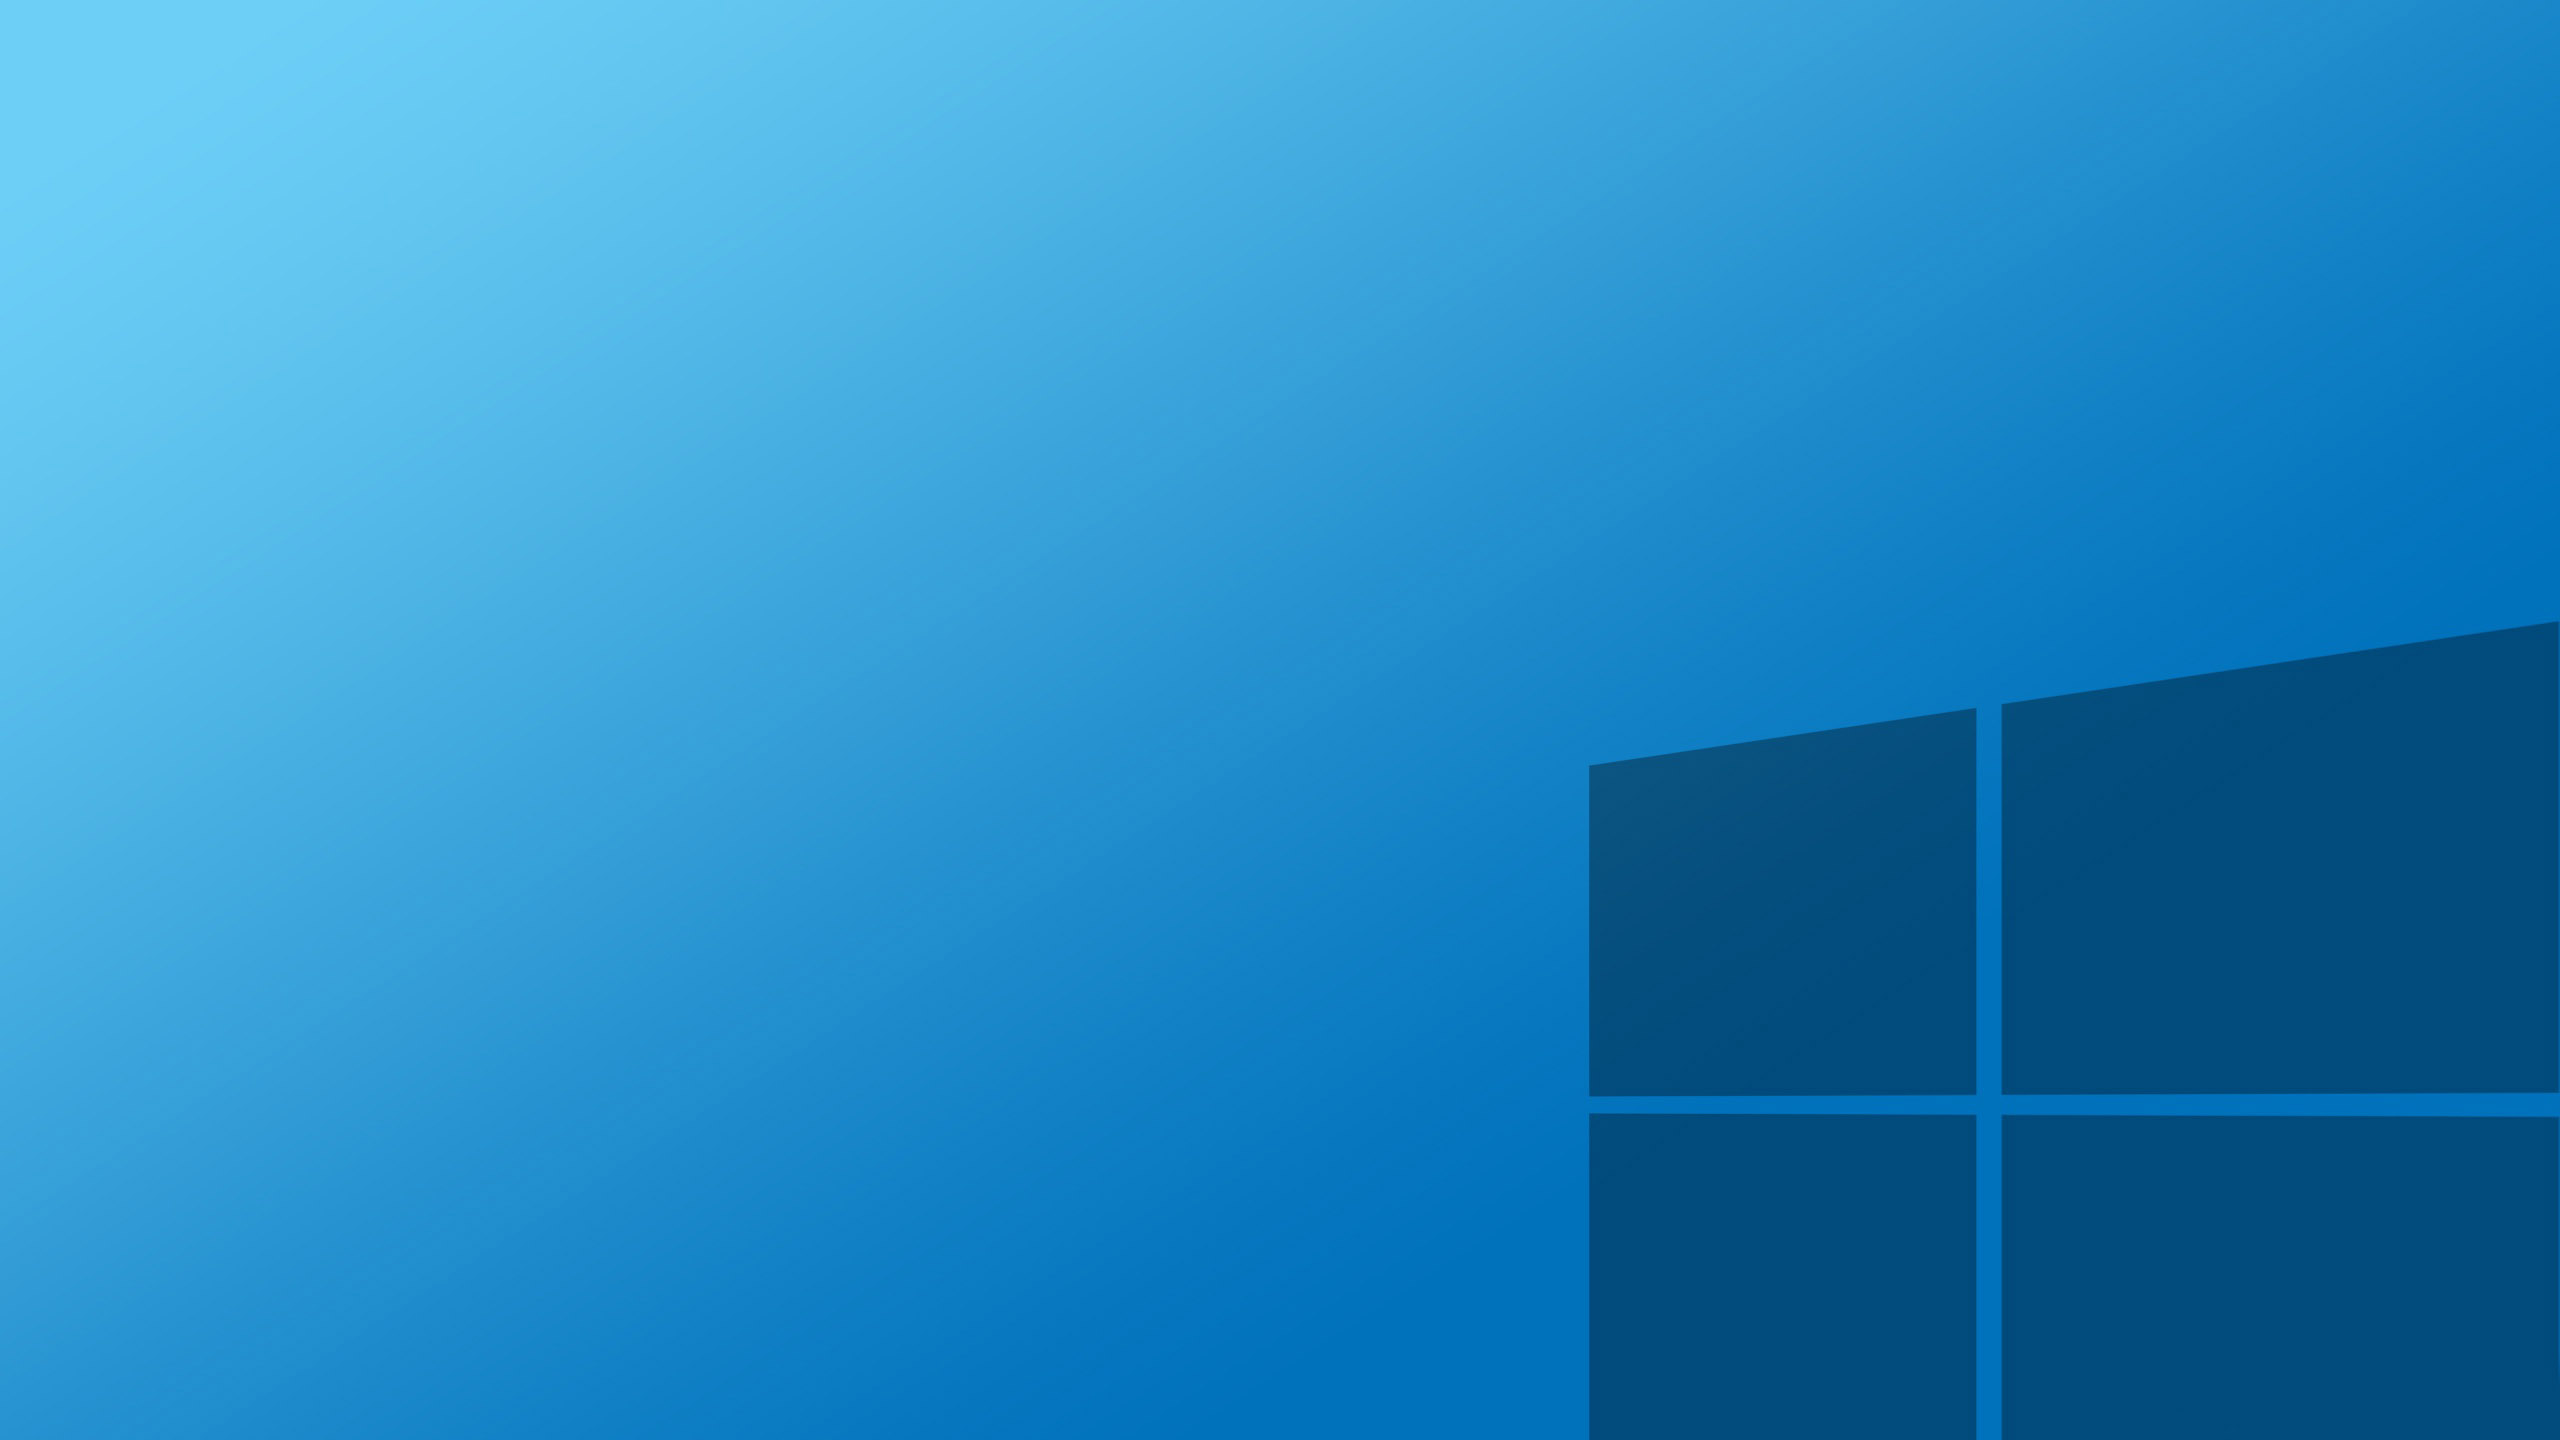 windows 10 wallpapers hd 164 hd wallpaper hdwallpapere com